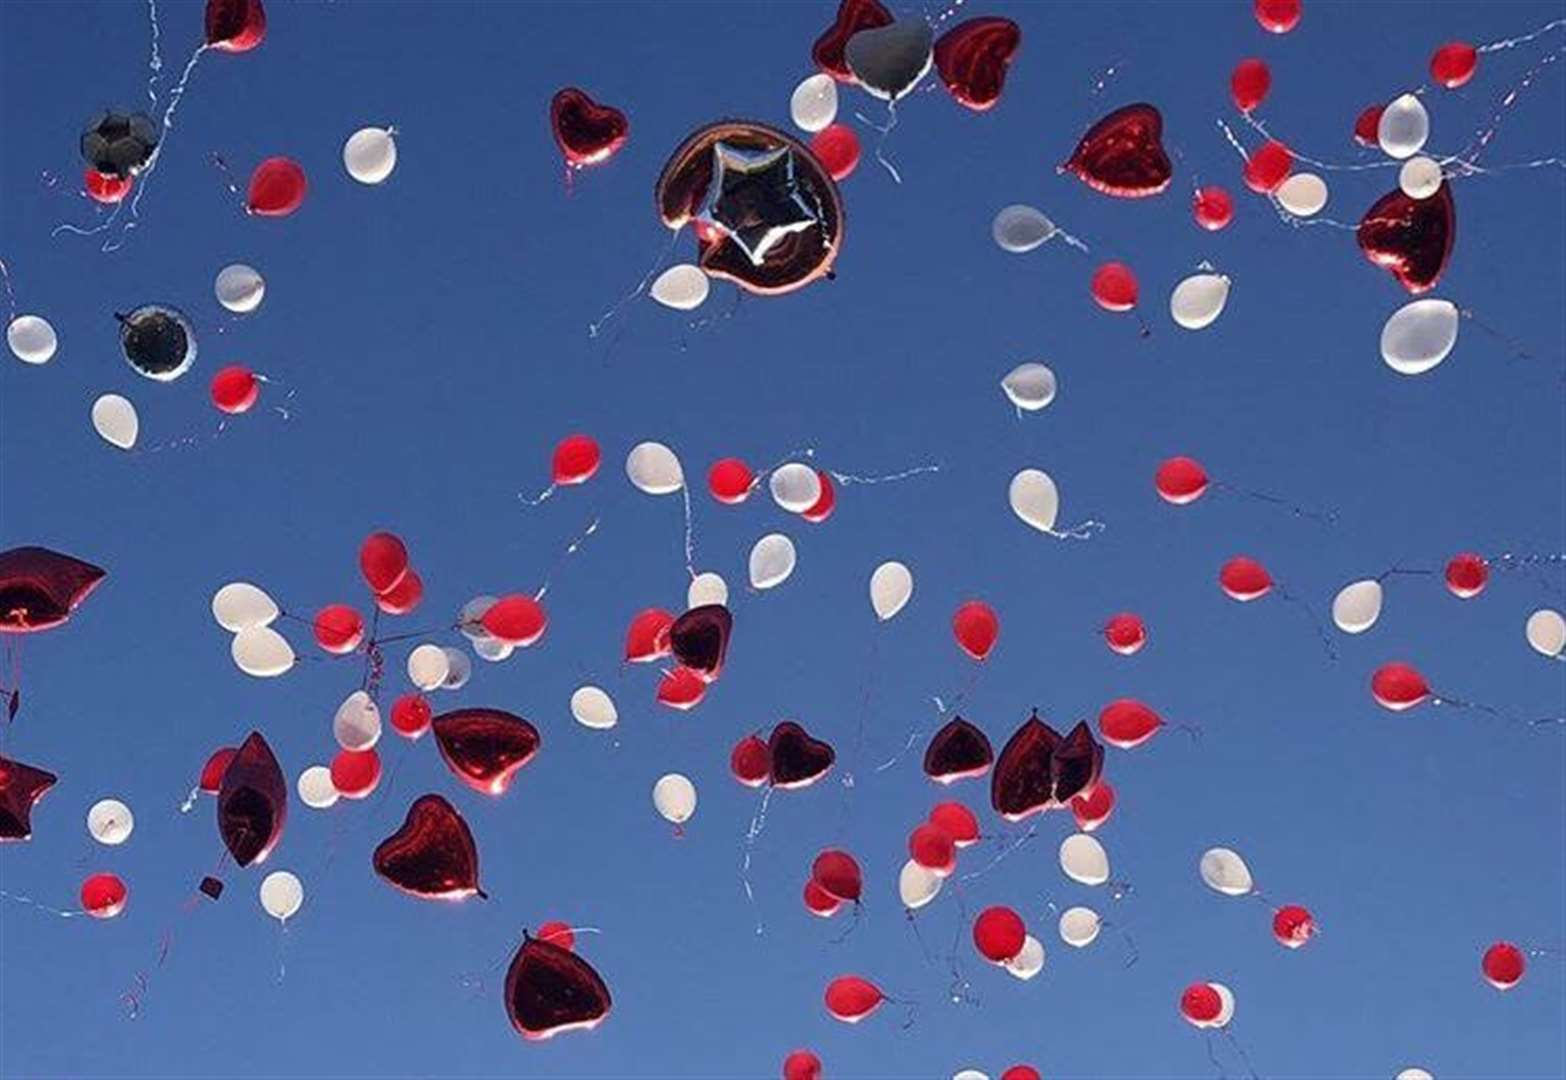 Balloons released in memory of teenager